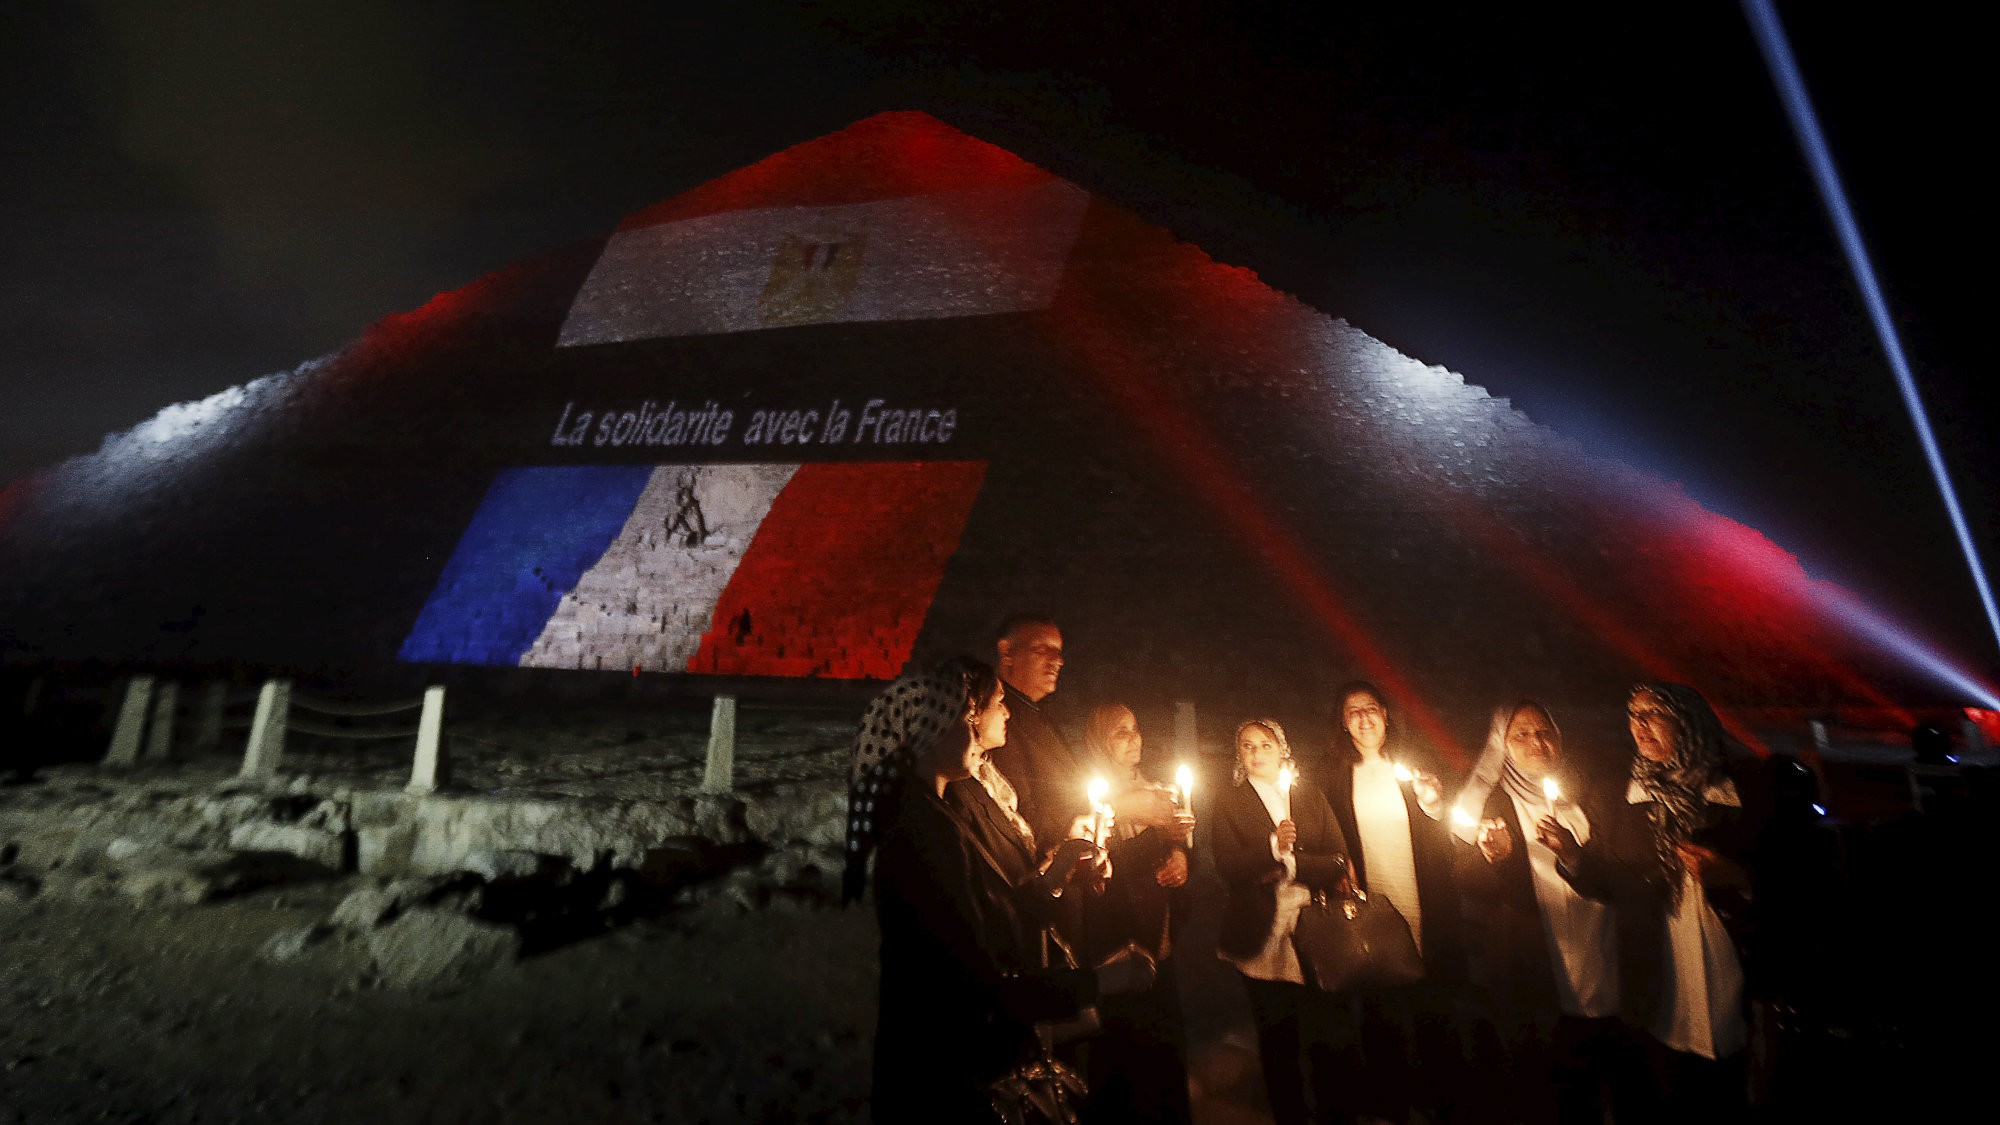 Egyptians light candles as the French and Egyptian flags and France's national colors of blue, white and red are projected onto one of the Giza pyramids, in tribute to the victims of the Paris attacks, on the outskirts of Cairo, Egypt, November 15, 2015.